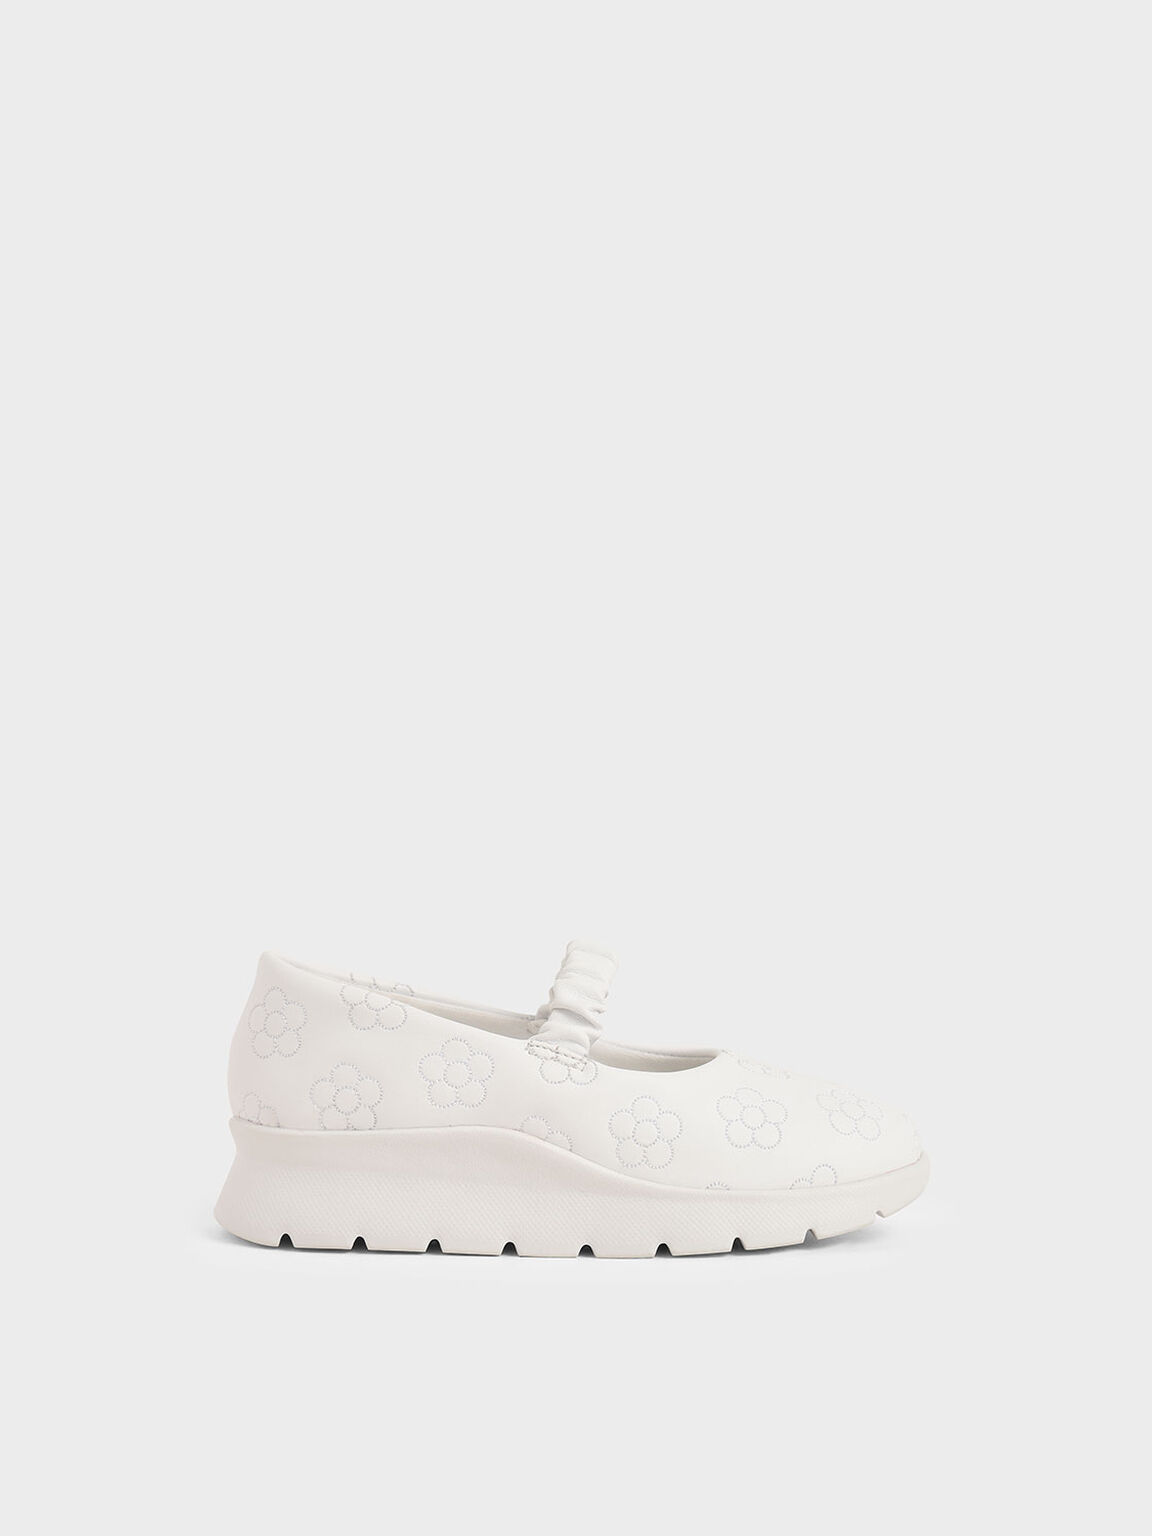 Girls' Printed Ruched Strap Slip-On Sneakers, White, hi-res